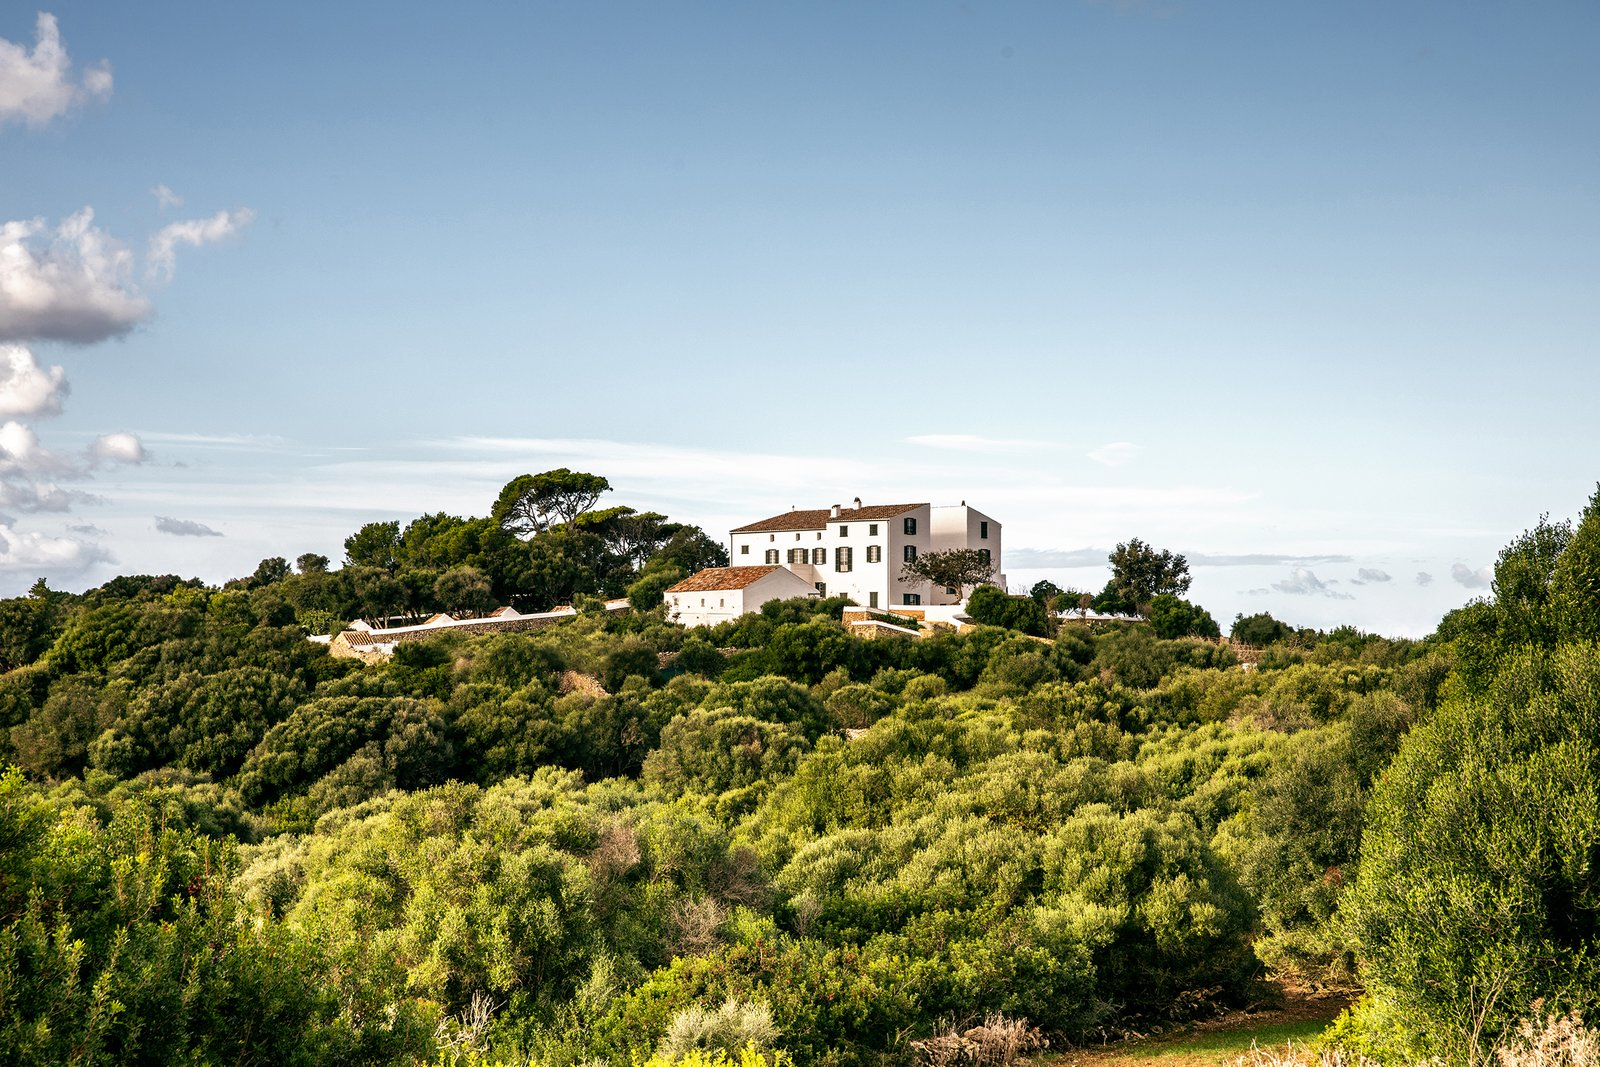 Located high up on a hill, Es Bec d'Aguila is a place to truly escape urban life by finding sanctuary in Menorca's rugged landscape.